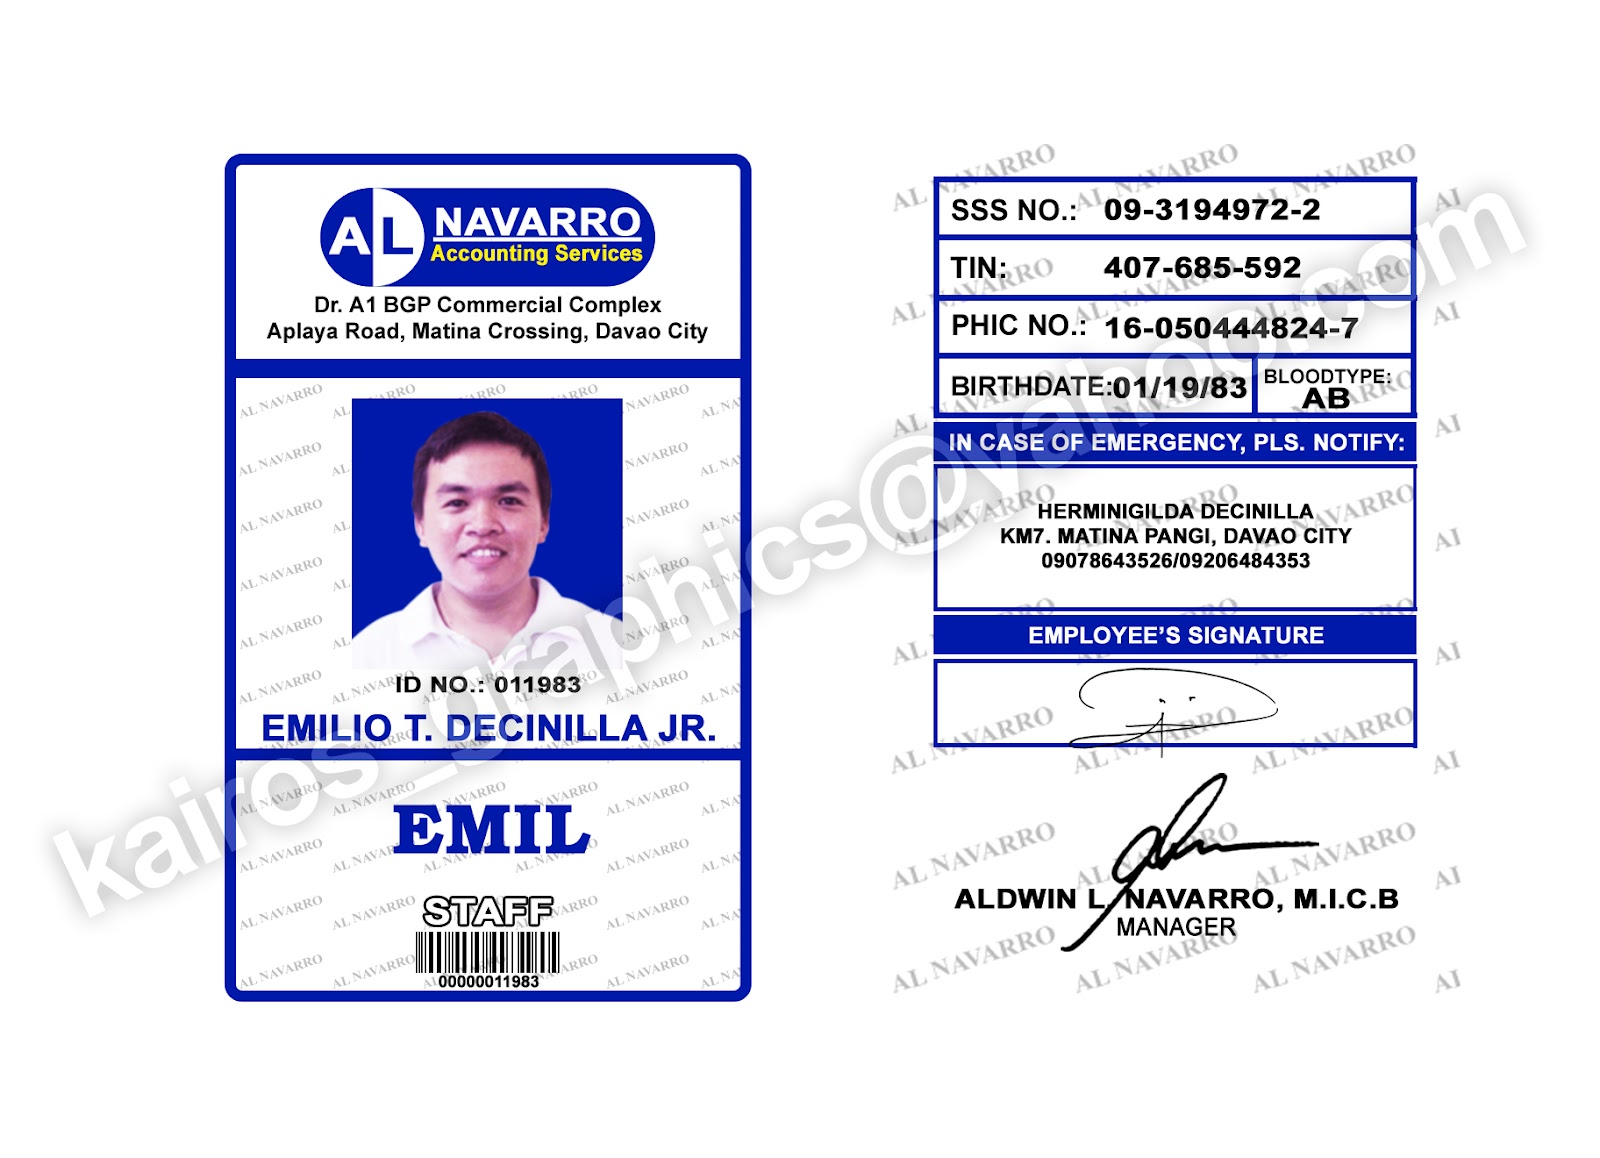 kairos graphics design  pvc id  school  u0026 company